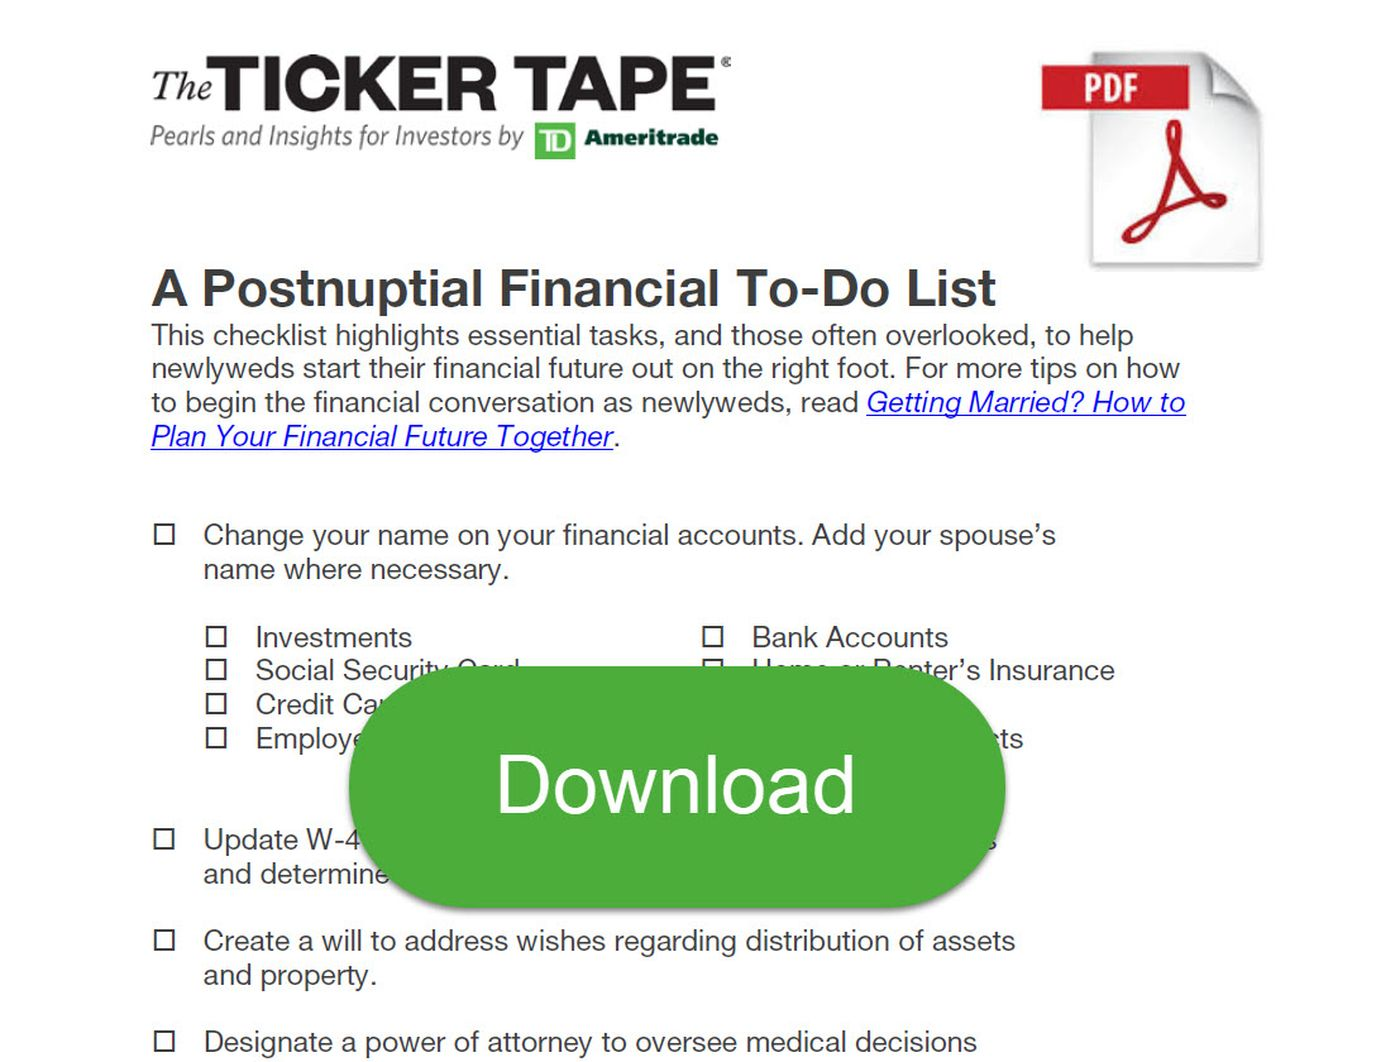 Postnuptial Financial To-Do List